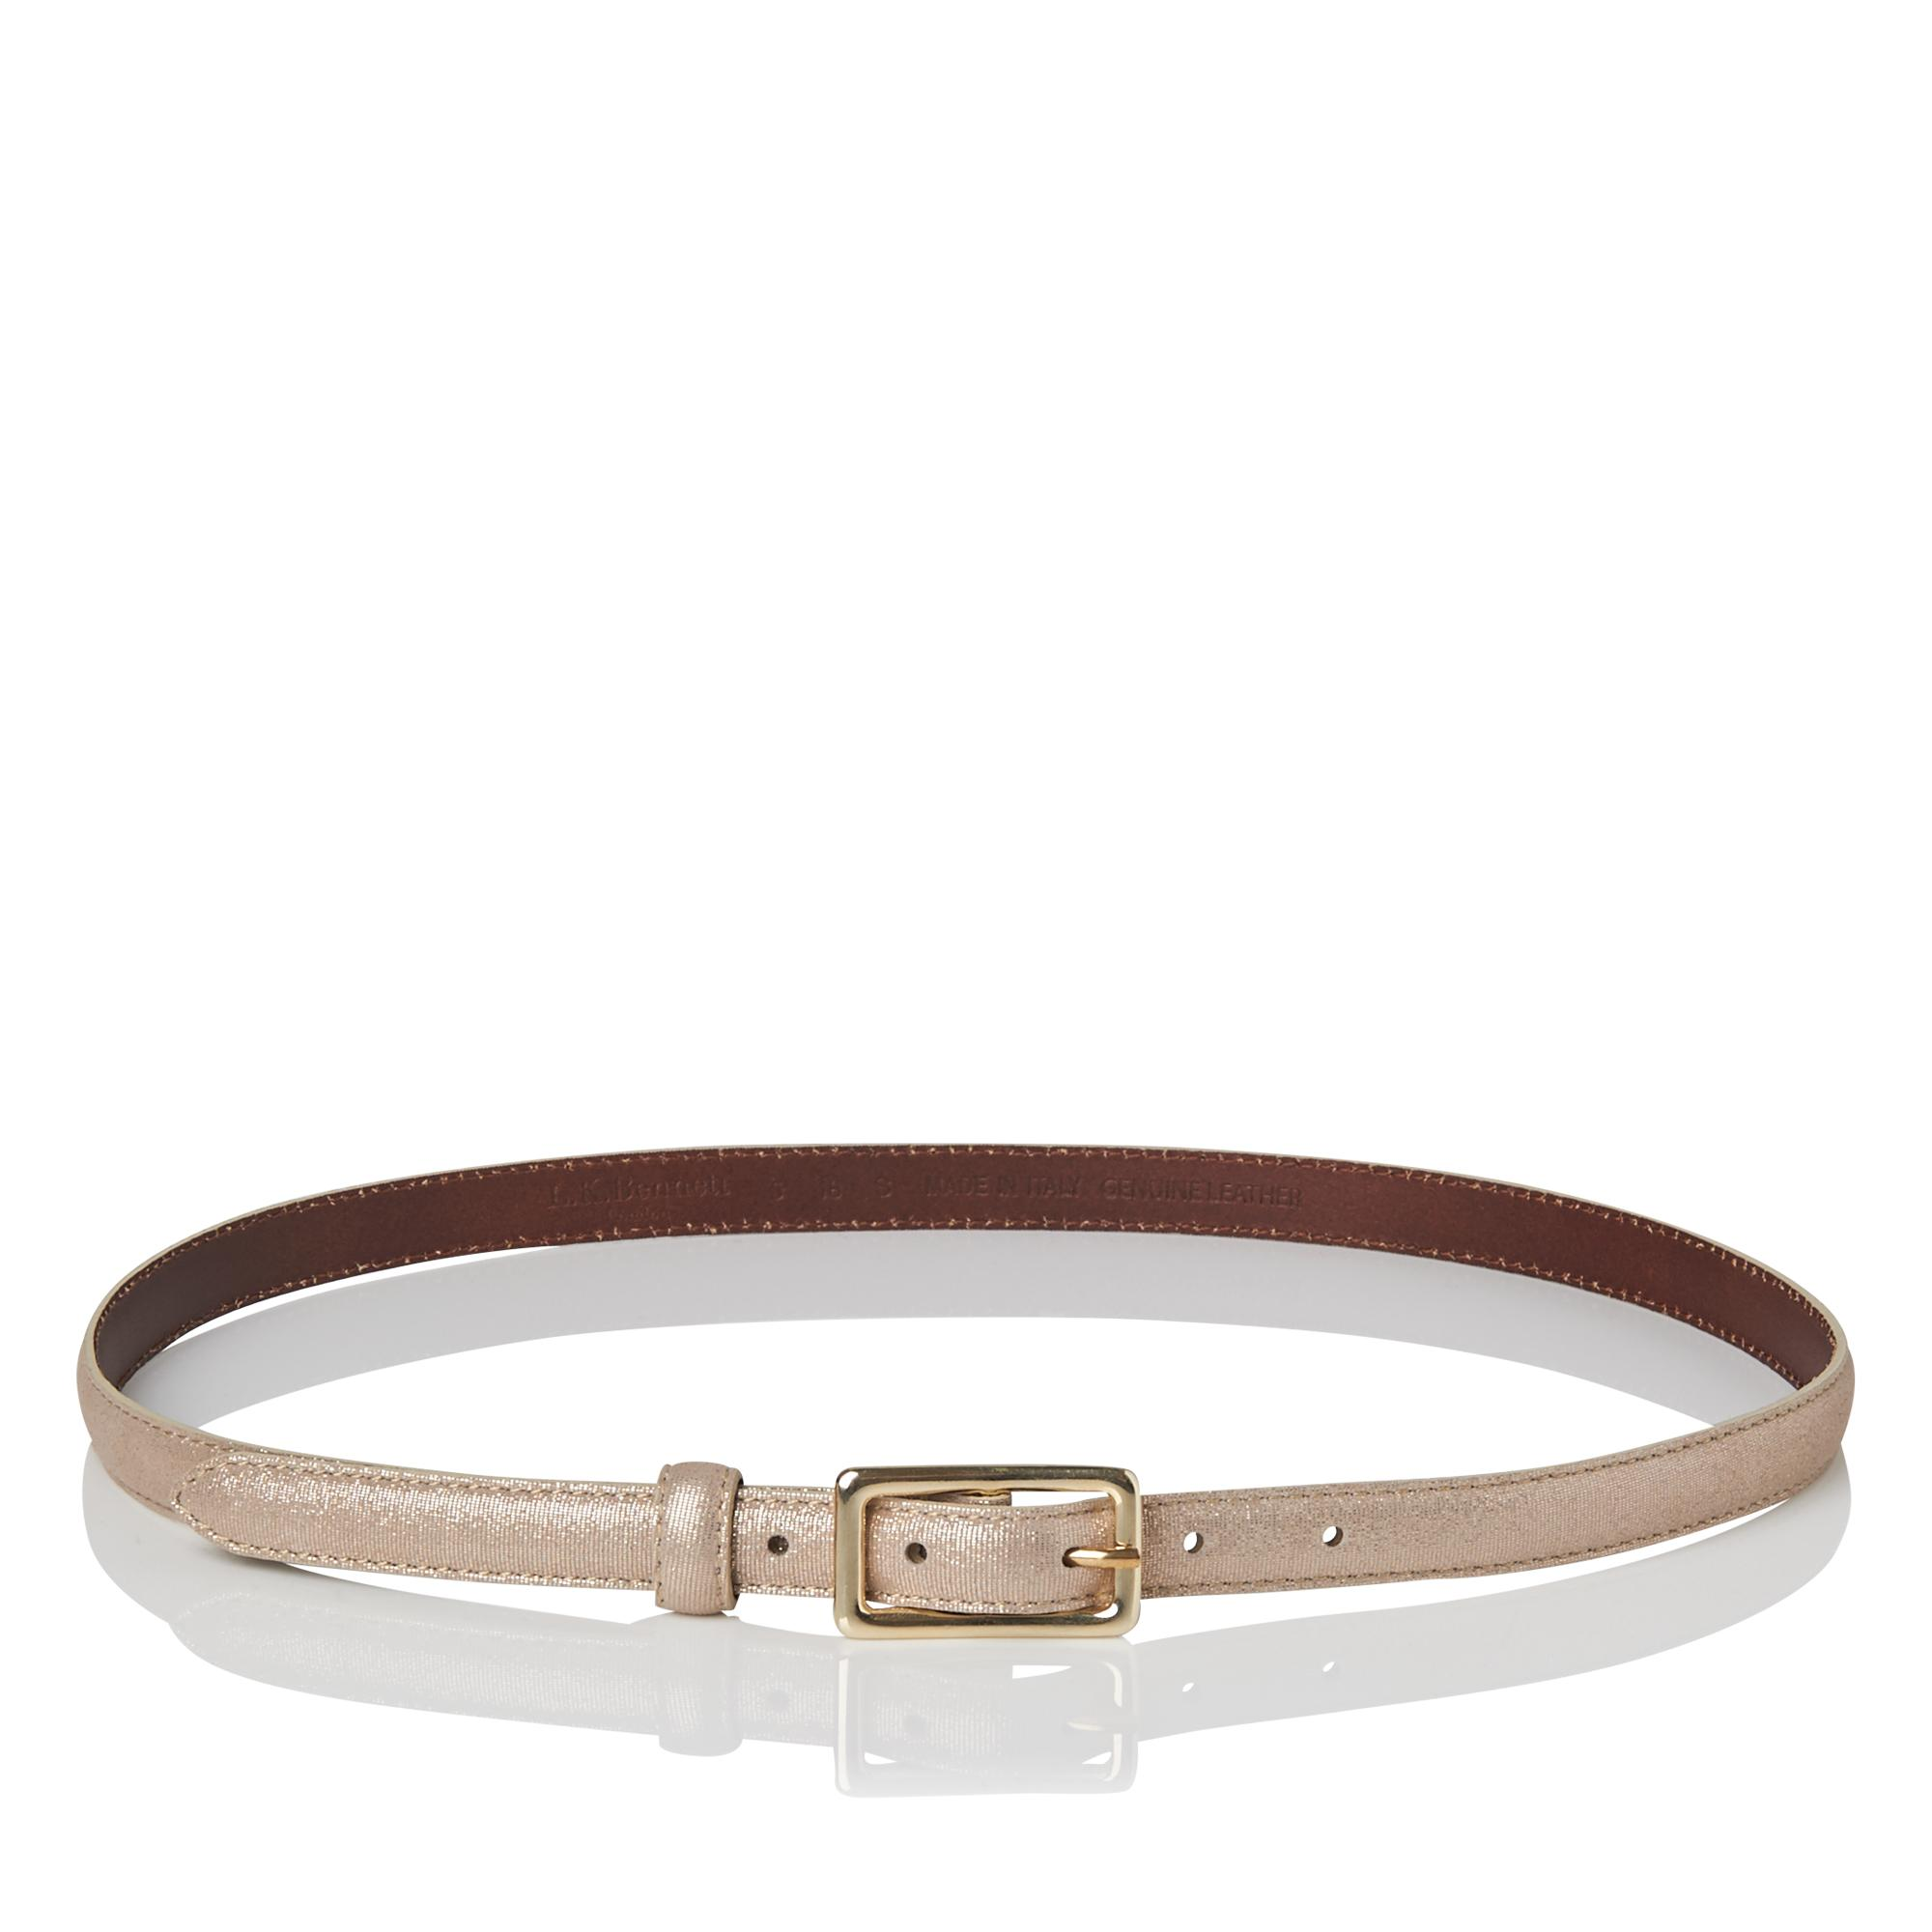 Glenda Gold Metallic Belt